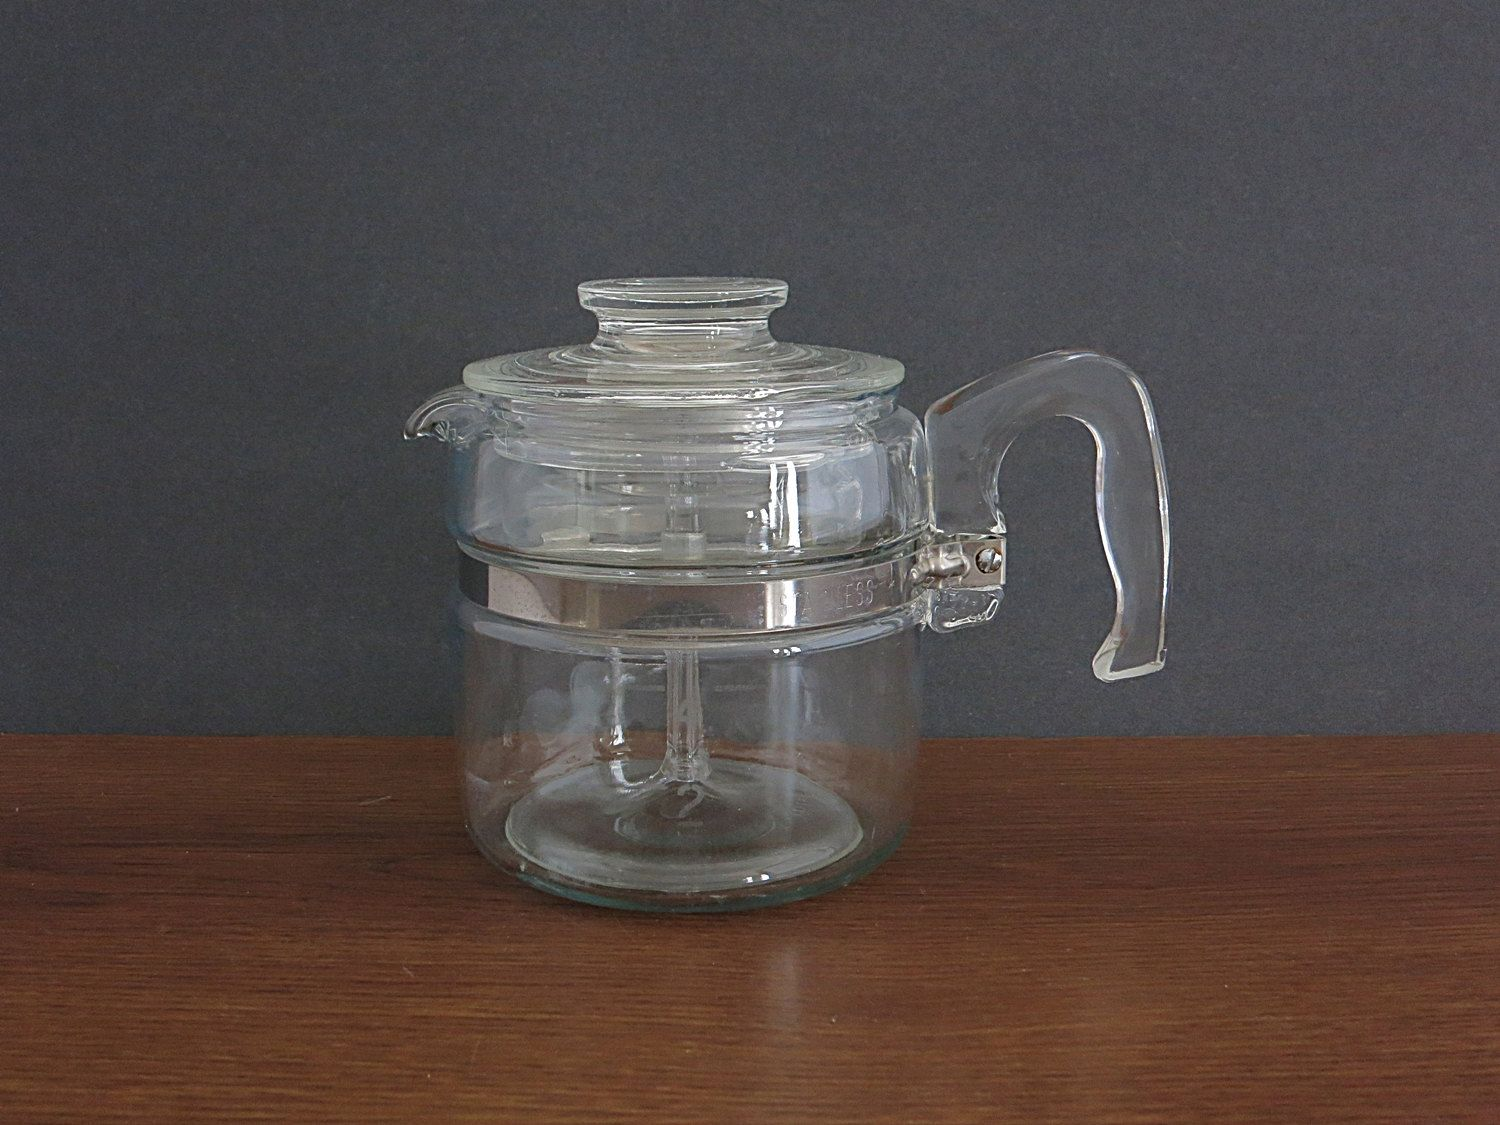 Pyrex Coffee Maker How To Use : Vintage 4 cup Pyrex Percolator Coffee Pot - Pyrex Flameware Coffee Pot - Rangetop Ware - Pyrex ...